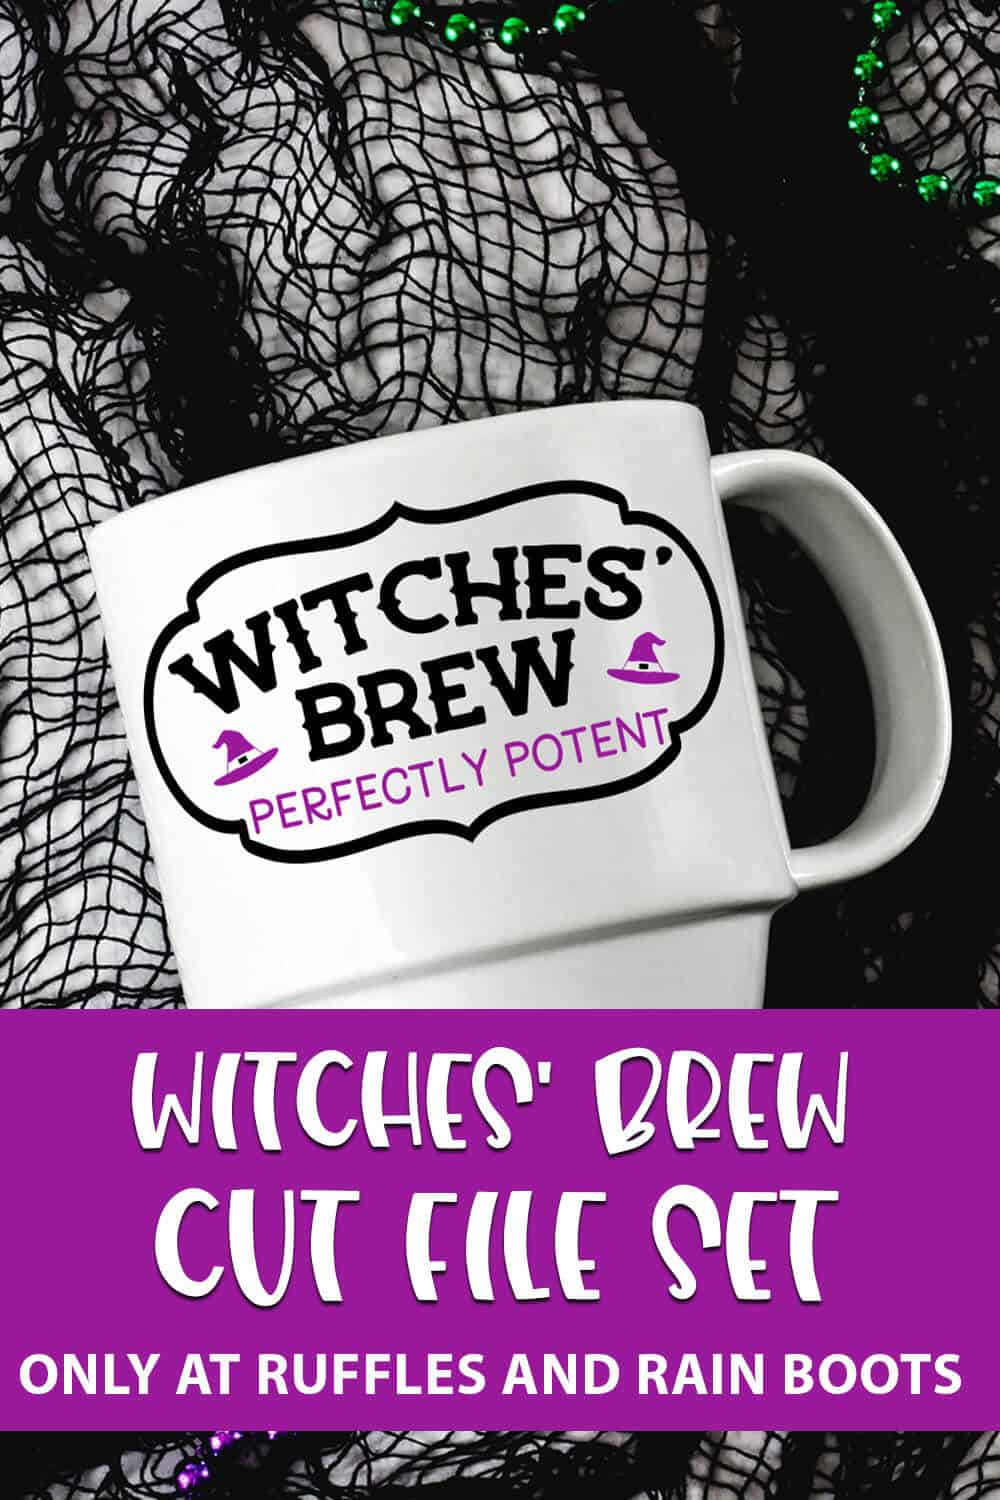 Witches brew cut file set for cricut or silhouette on a mug with text which reads witches' brew cut file set